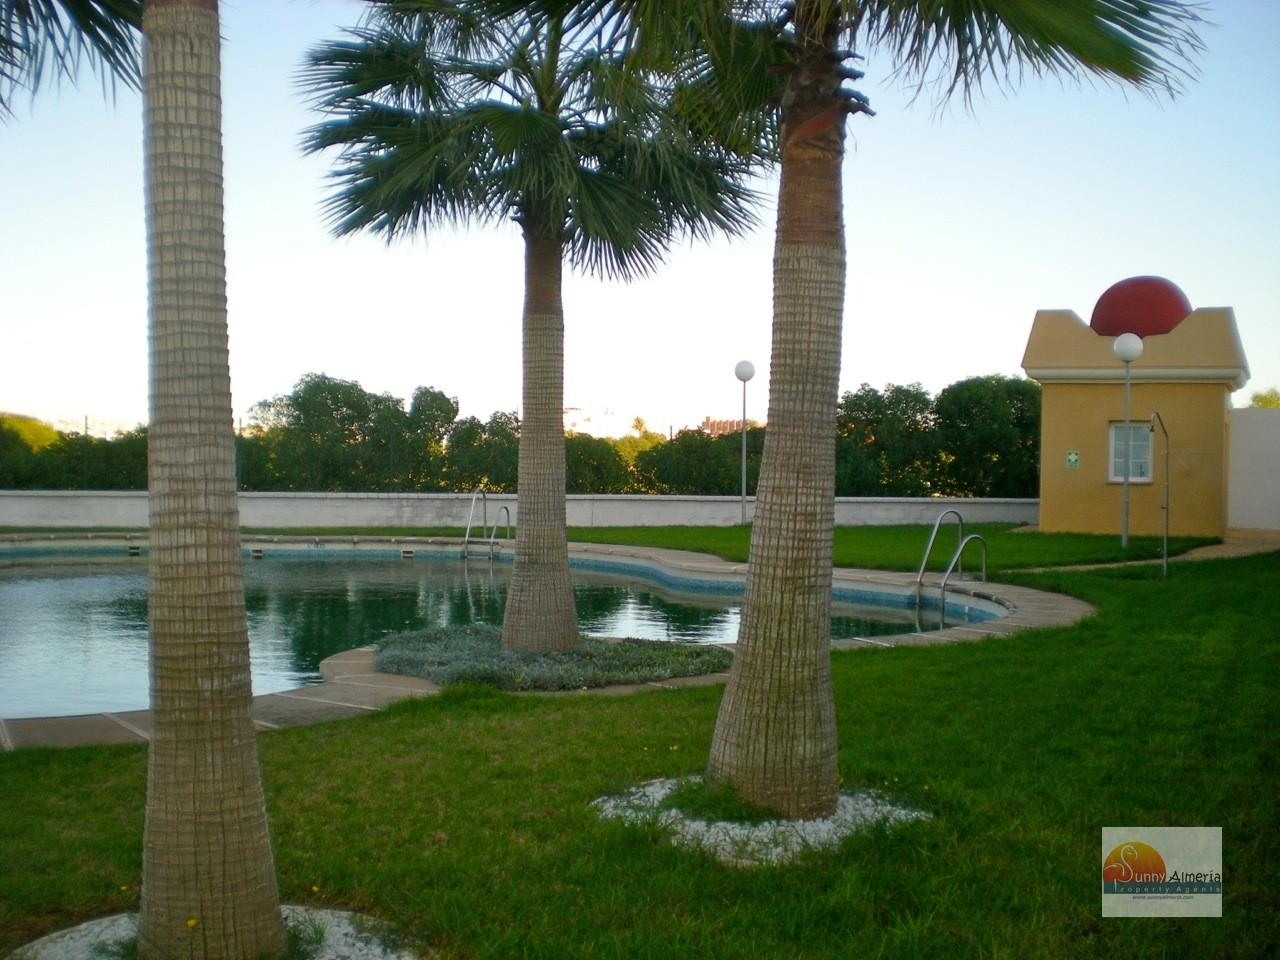 Luxury Apartment for rent in Roquetas de Mar, 750 €/month